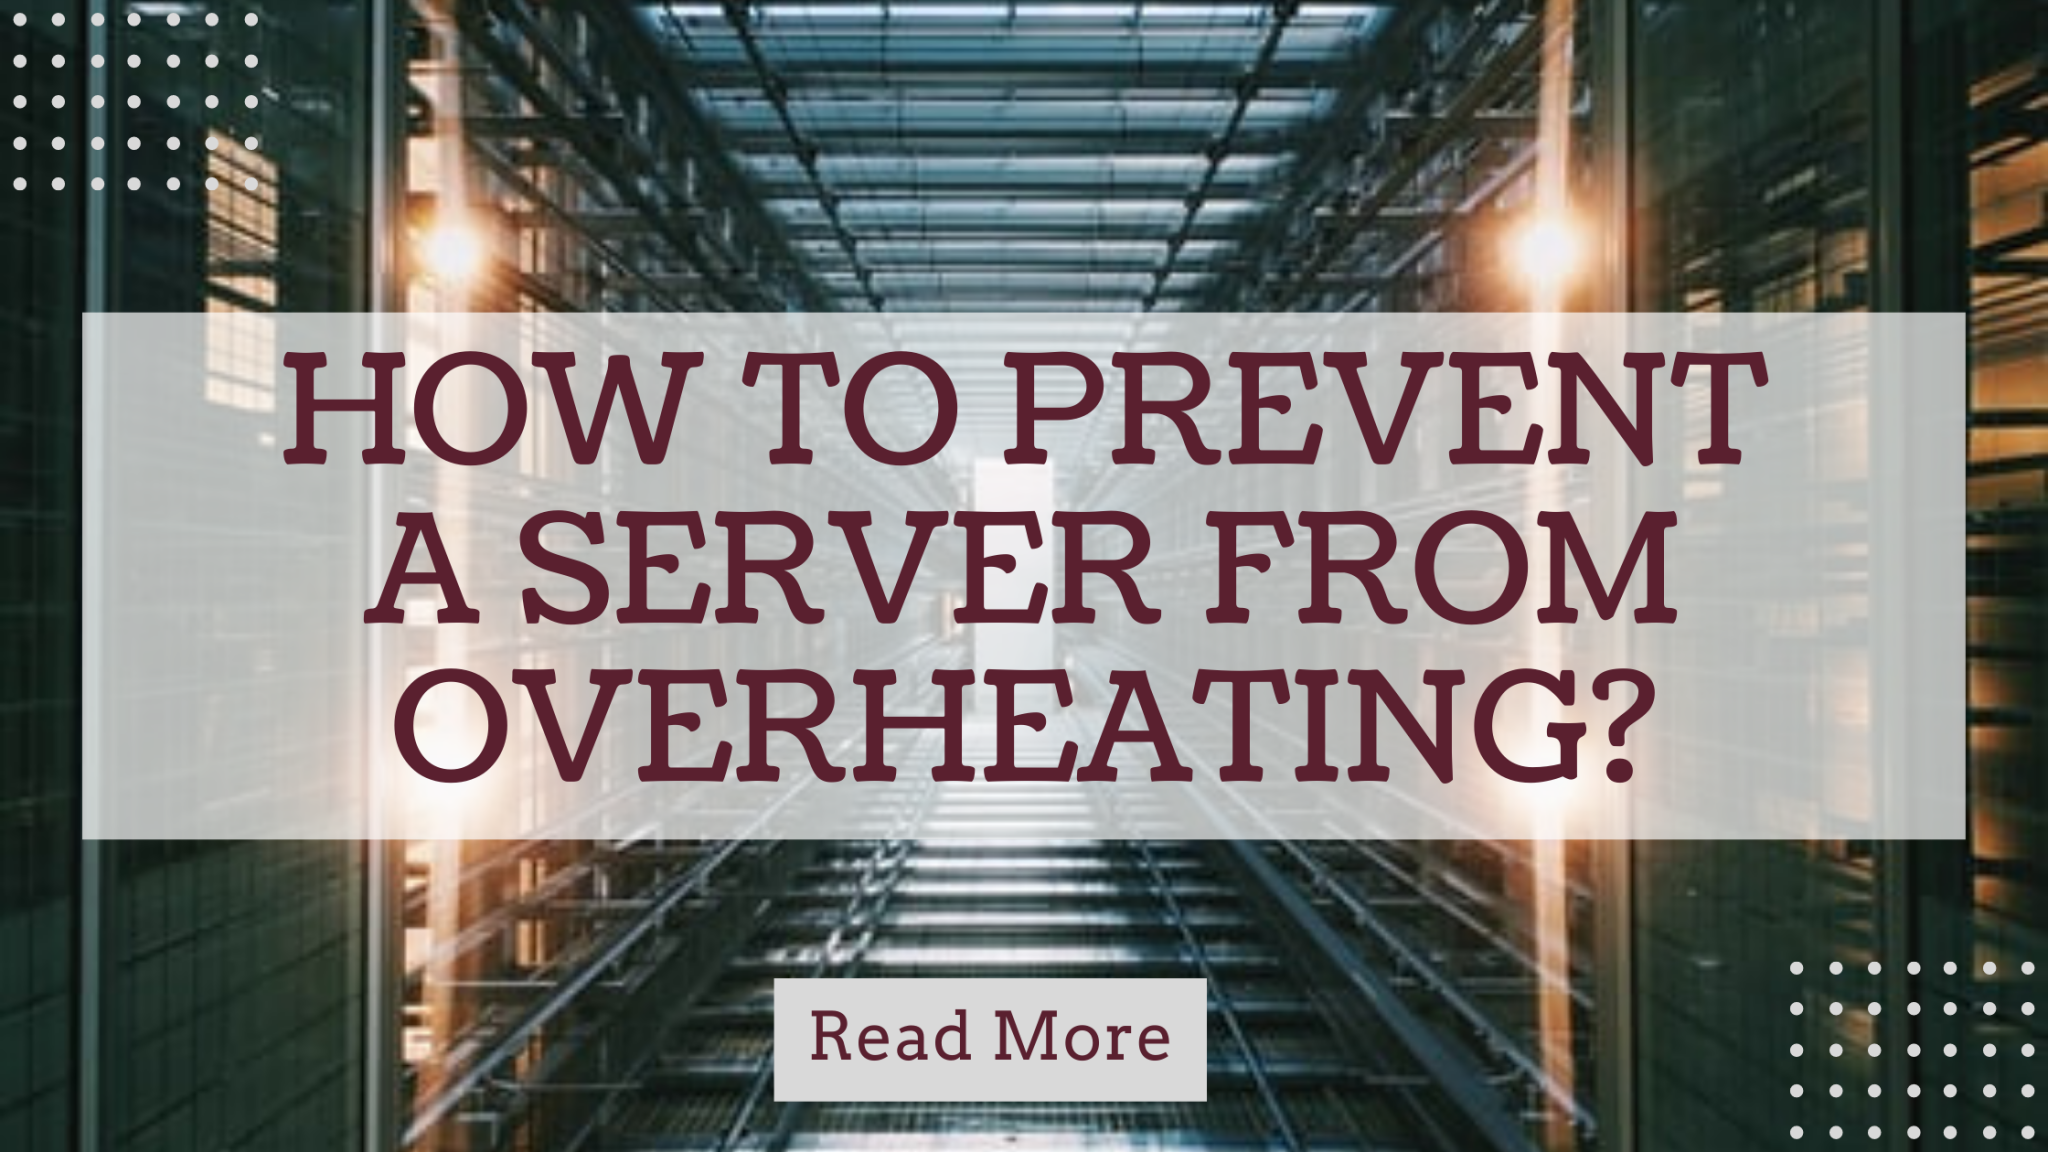 How to prevent a server from overheating?